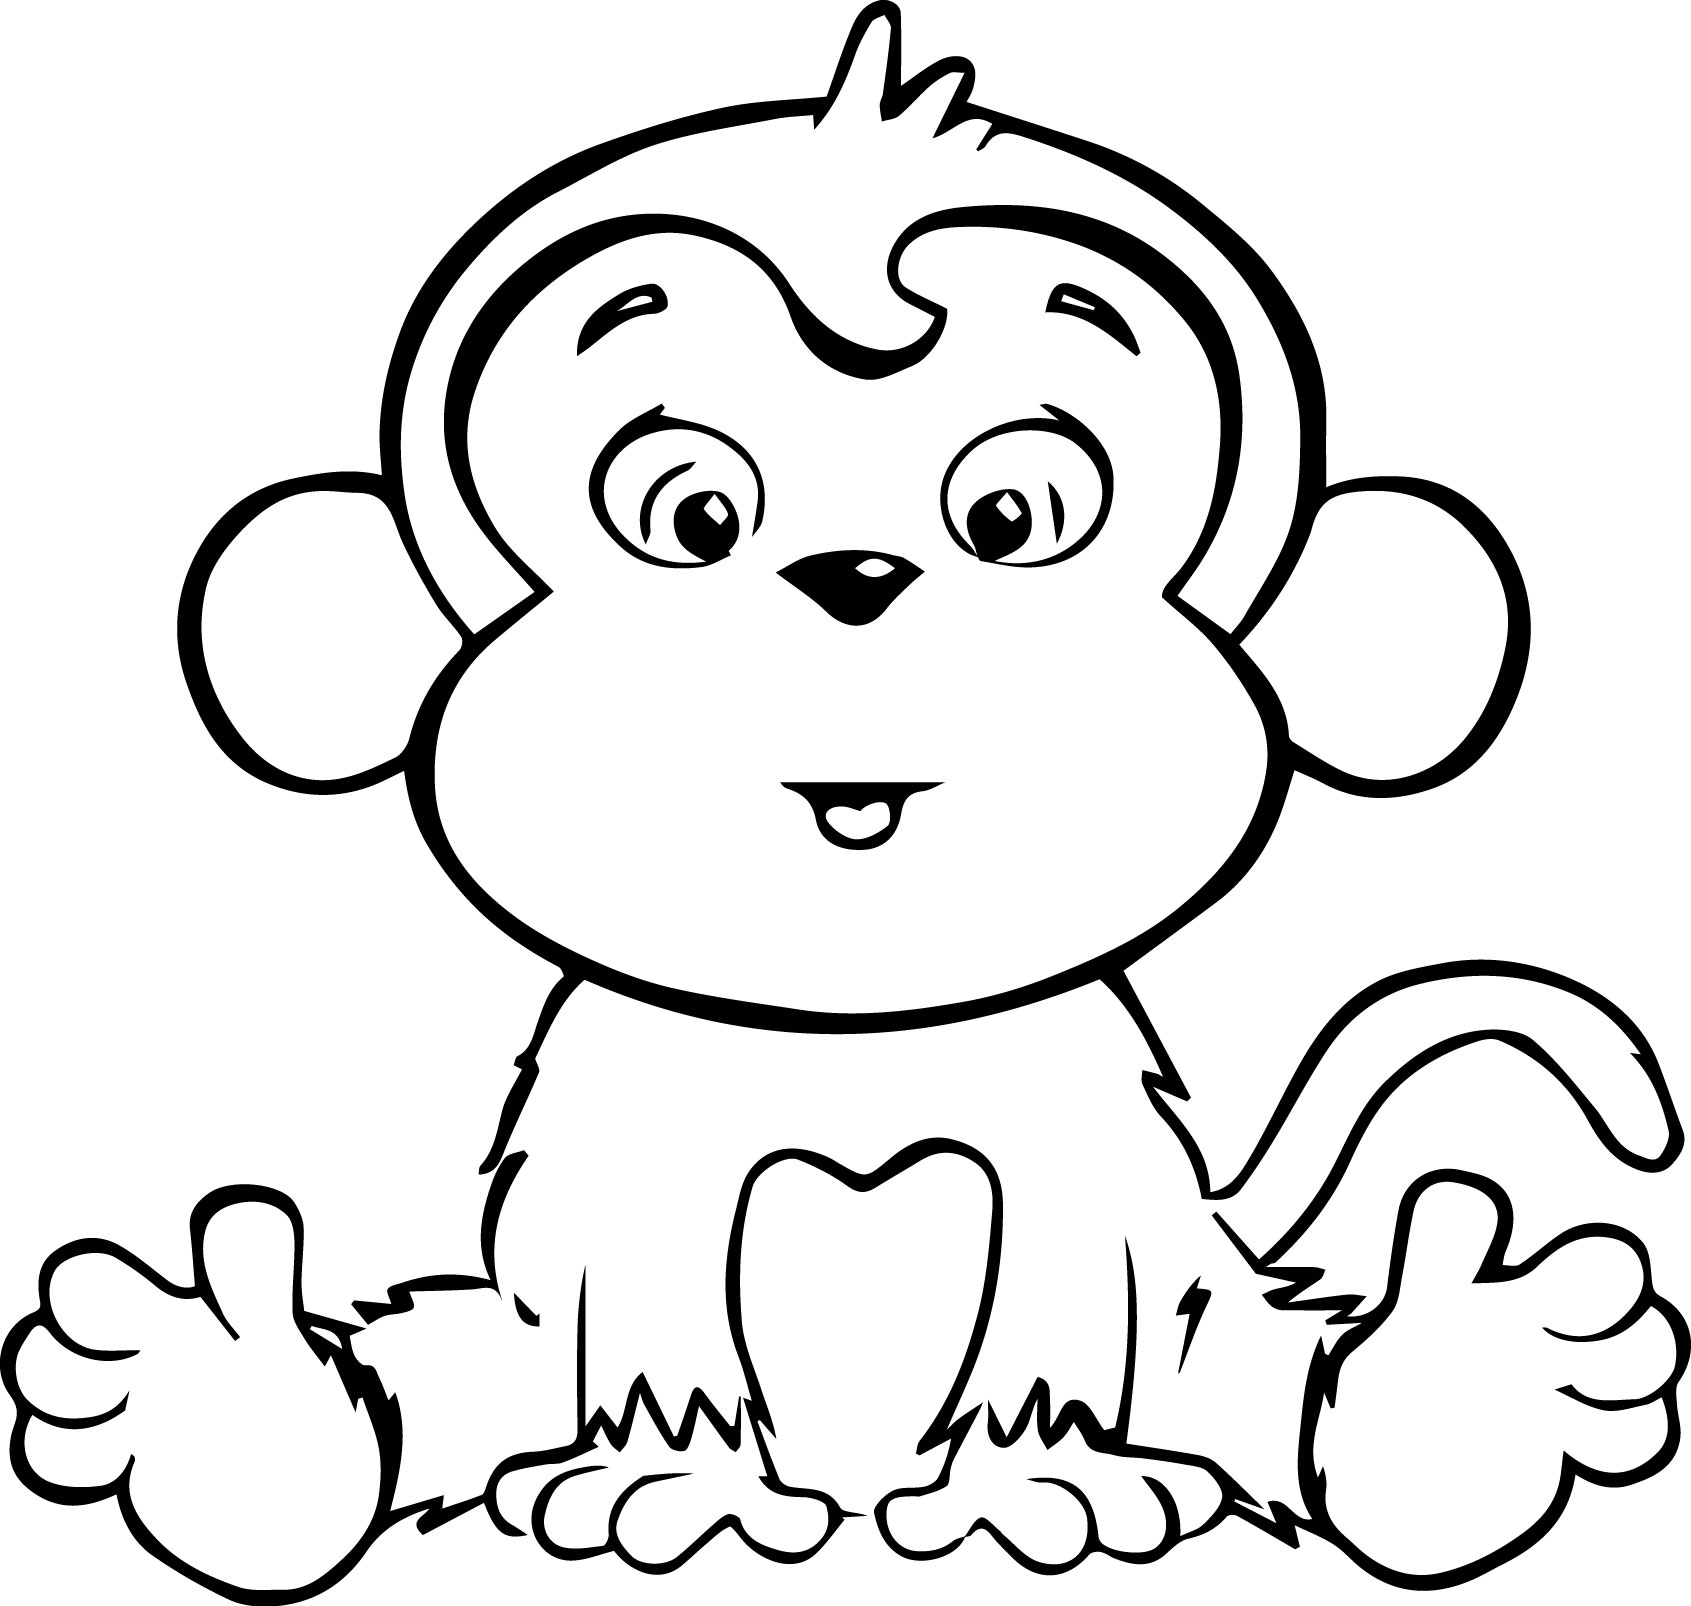 1691x1606 Baby Girl Monkey Coloring Pages Preschool To Funny Draw